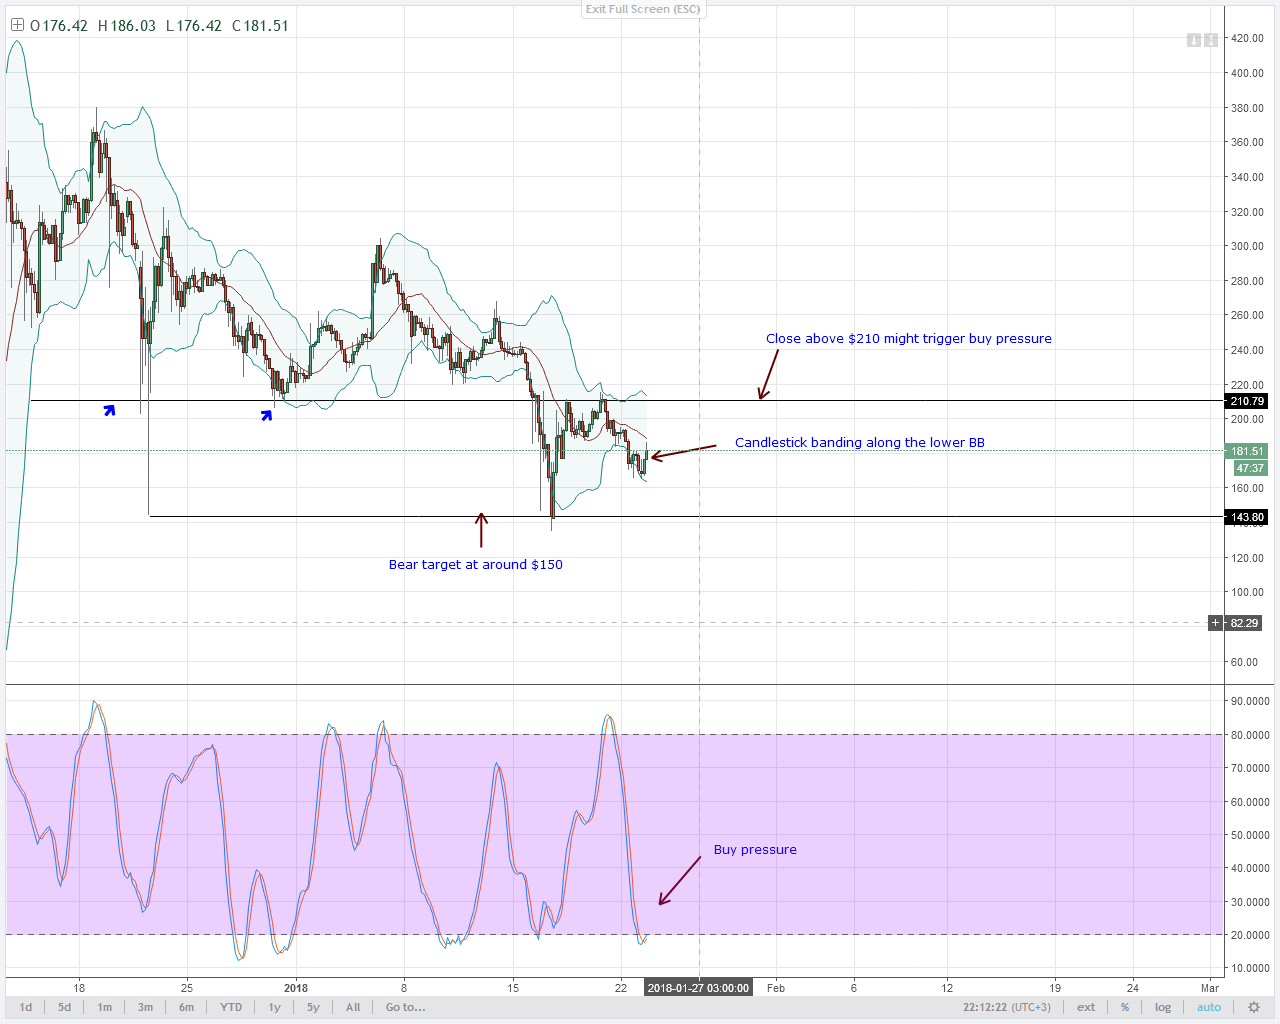 altcoin analysis LTC buy pressure